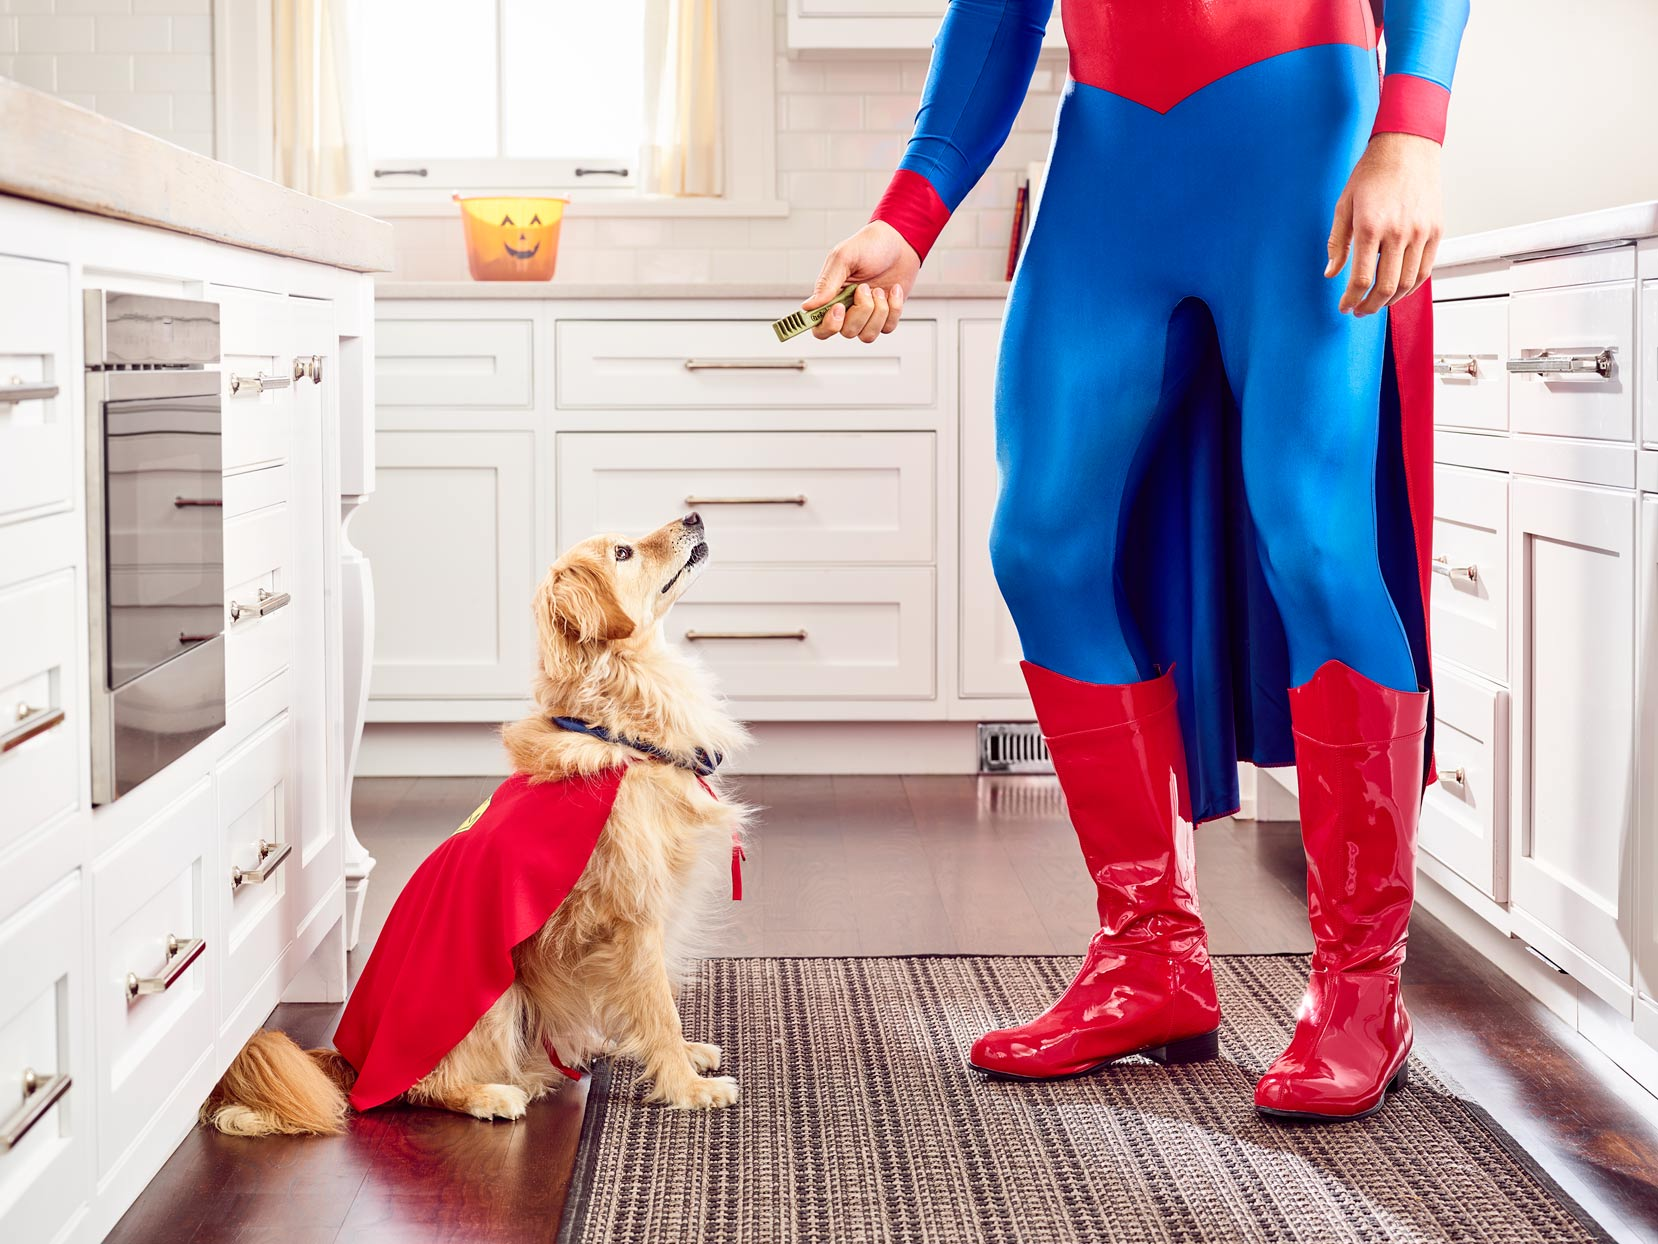 Mark DeLong - Commercial Photography - Man in red and blue superhero outfit gives a treat to his golden retriever in a red cape.